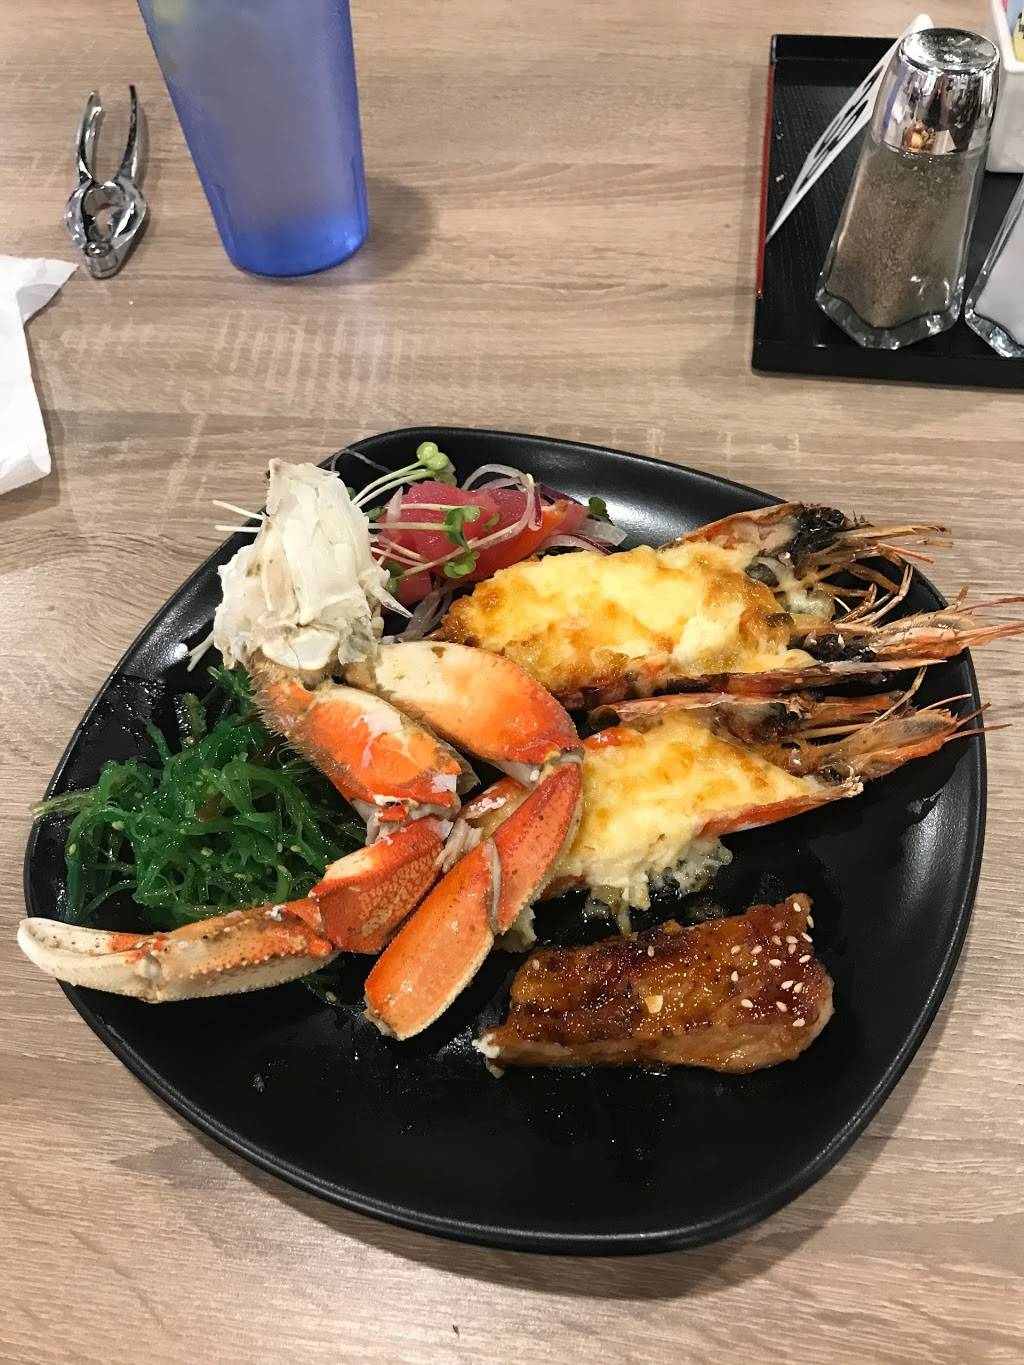 Makino Sushi And Seafood Buffet   restaurant   1600 S Azusa Ave #370, City of Industry, CA 91748, USA   6265812226 OR +1 626-581-2226